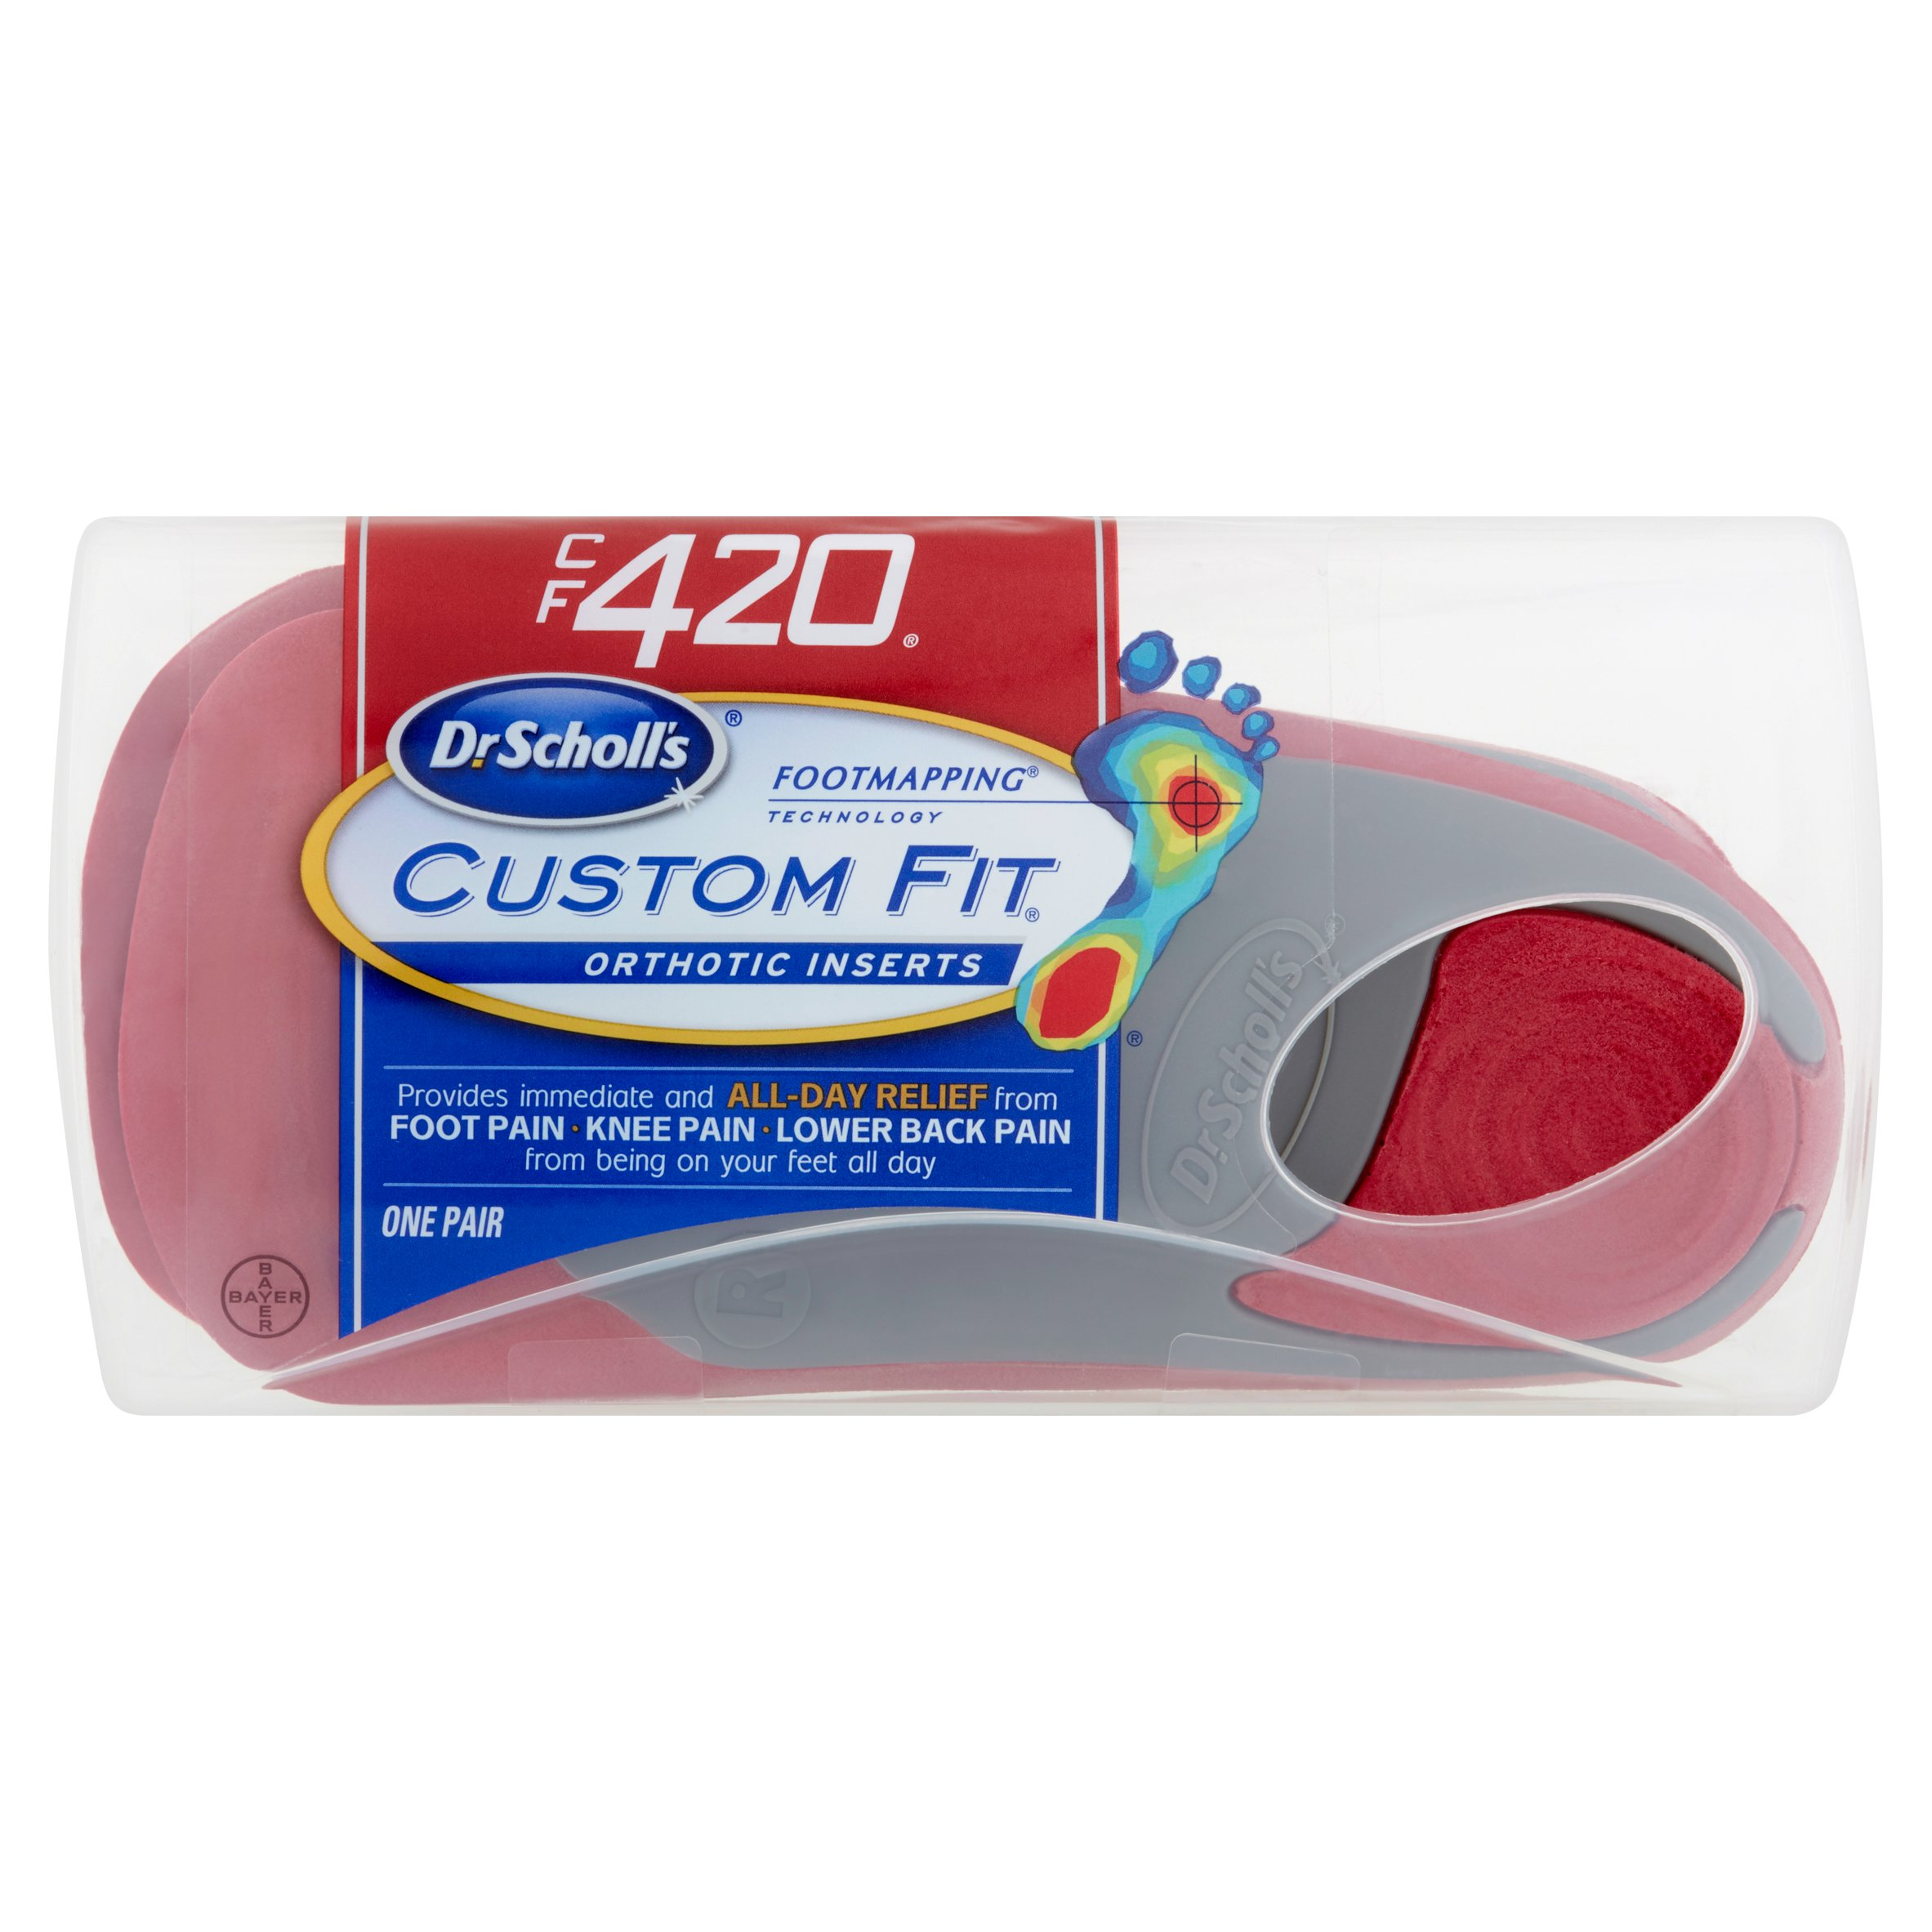 Dr. Scholl's Custom Fit Orthotics, CF420 by Bayer HealthCare LLC